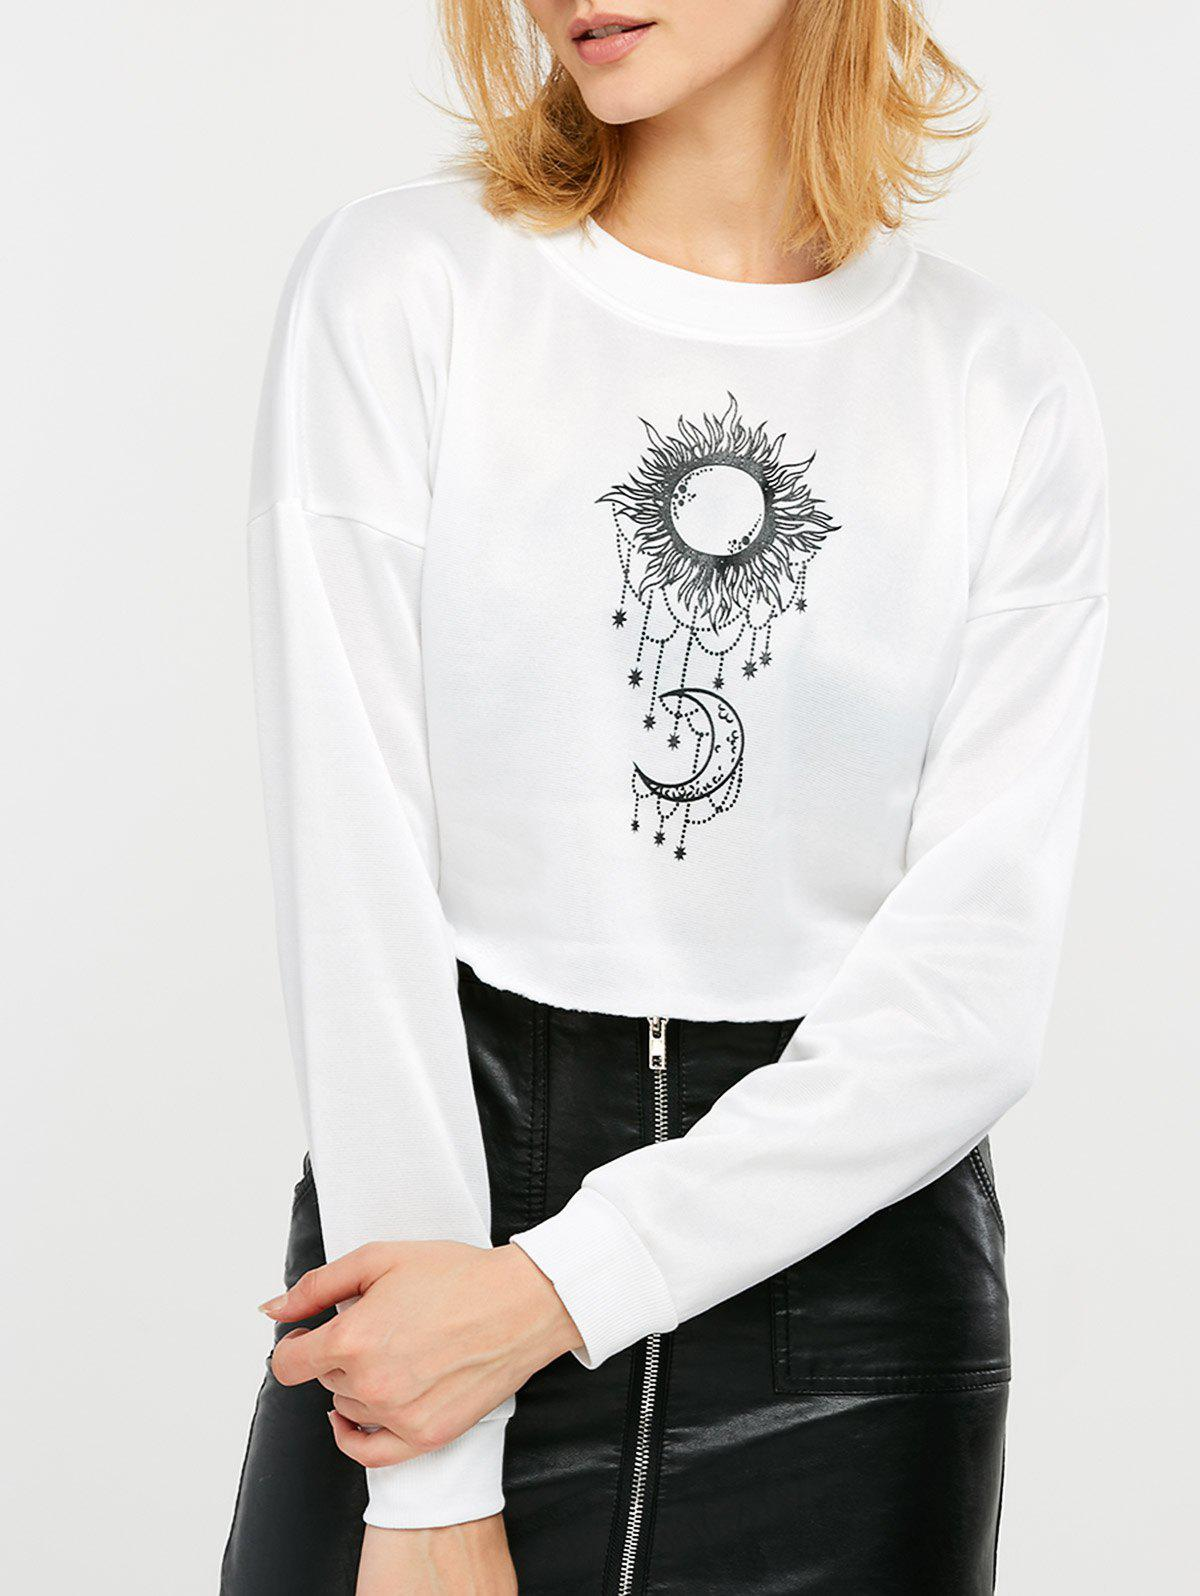 Chic Sun and Moon Print Cropped Sweatshirt